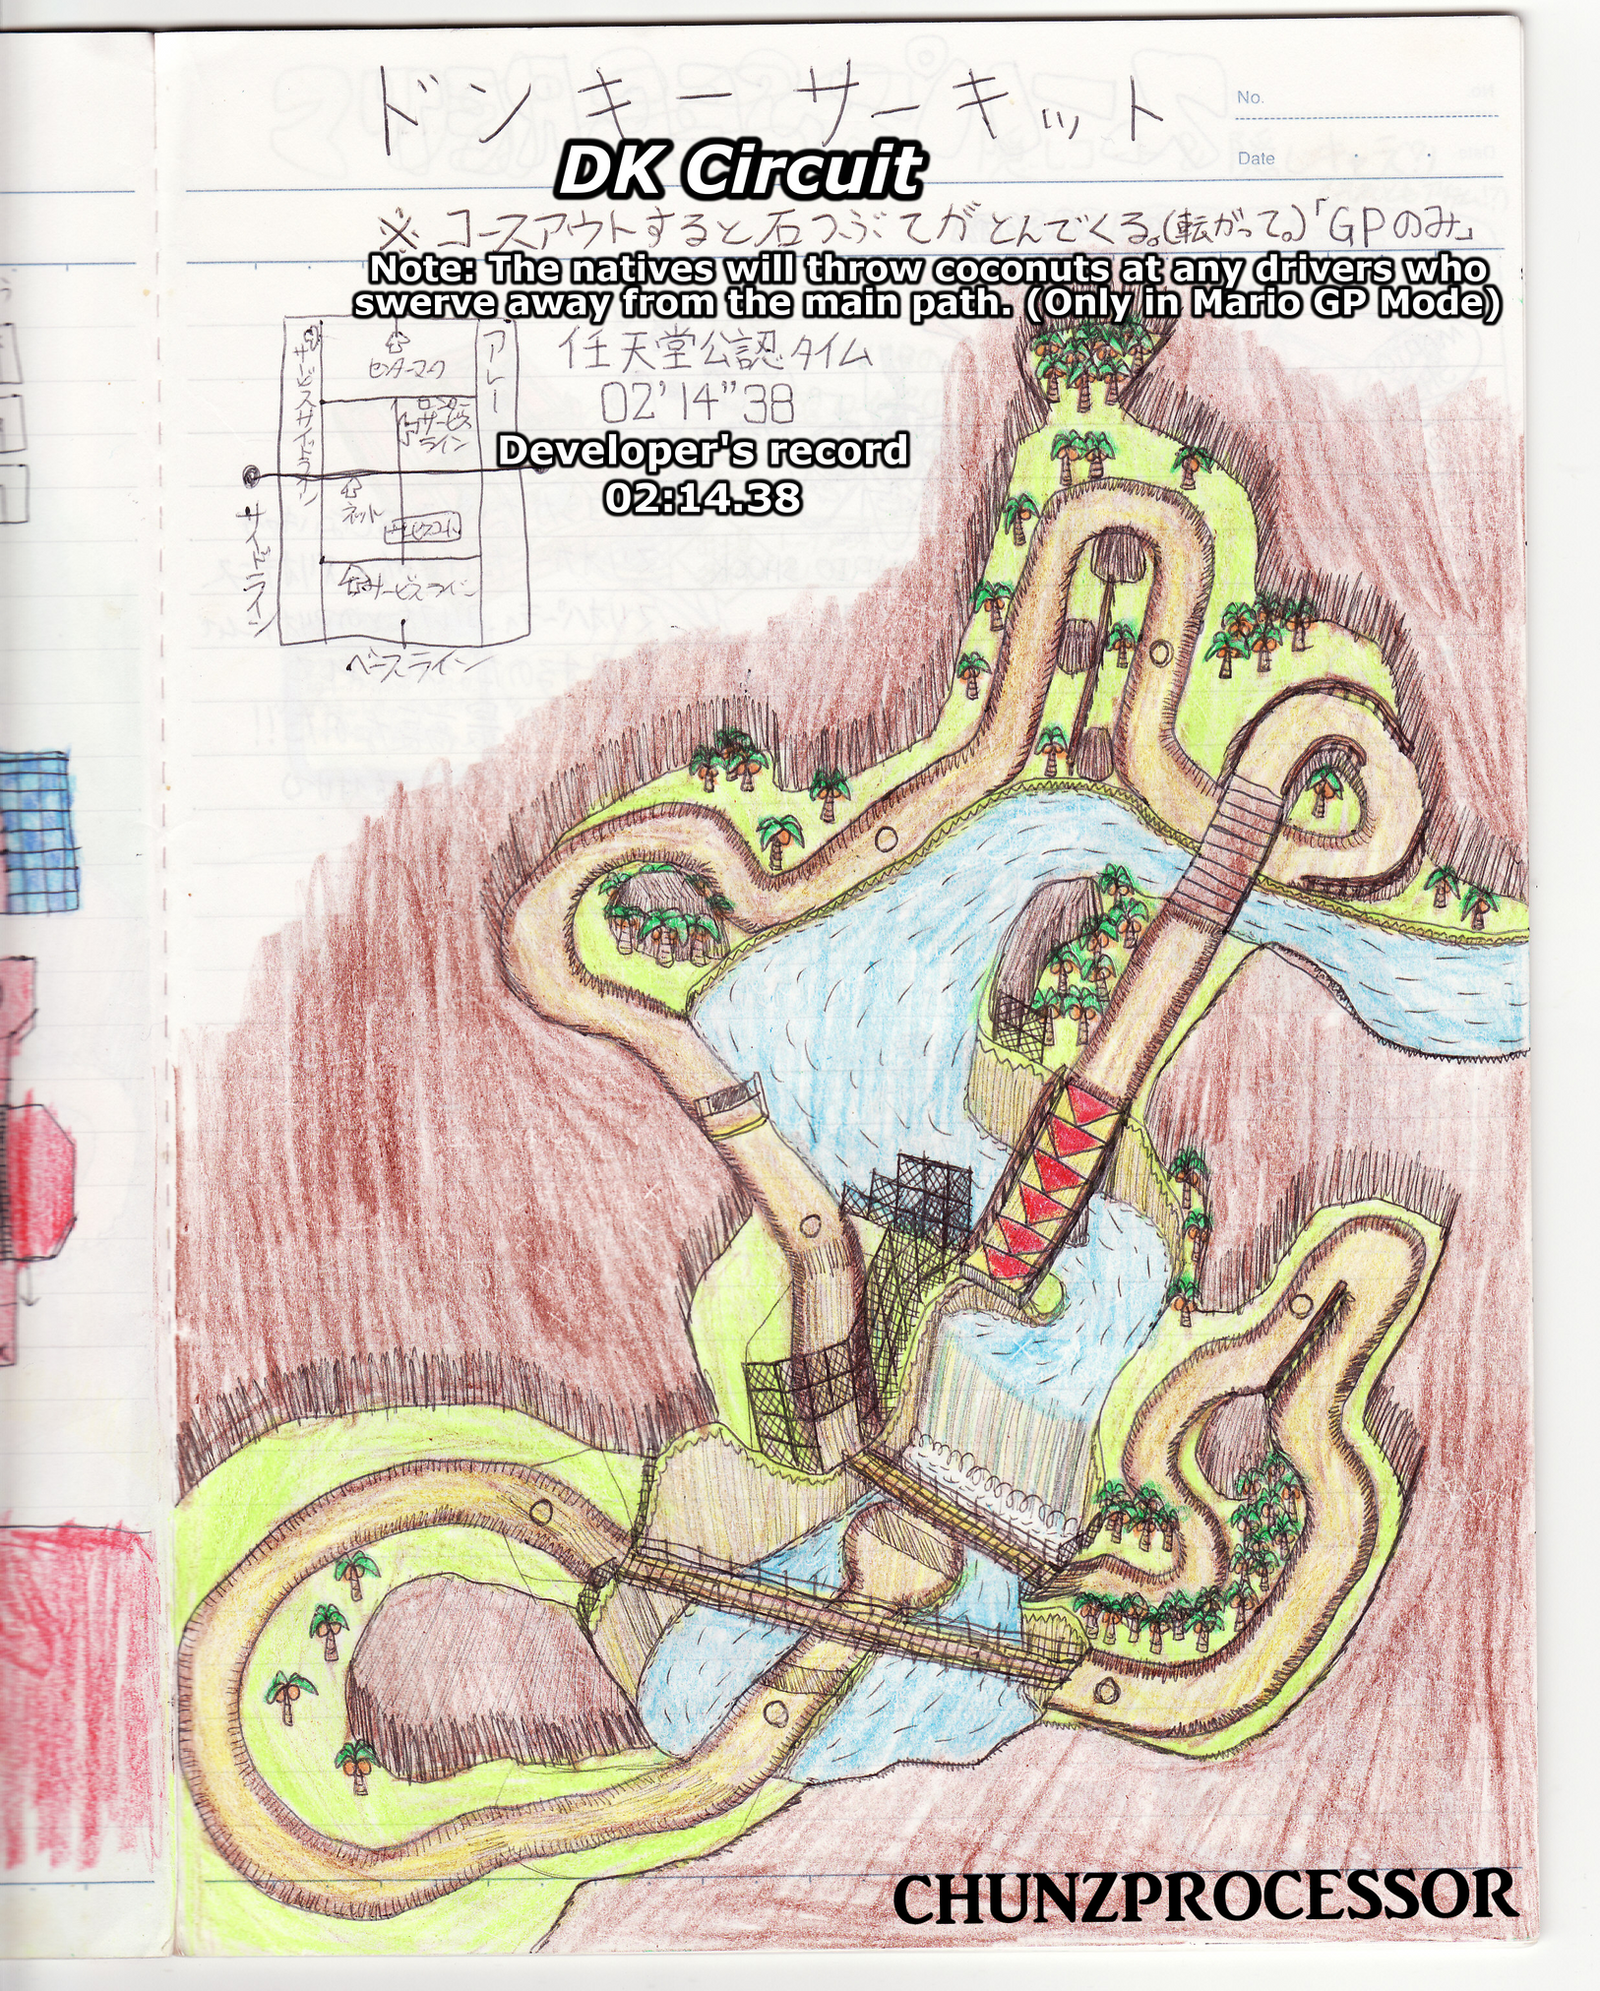 DK Circuit (My Original Race Track for Mario Kart) by chunzprocessor